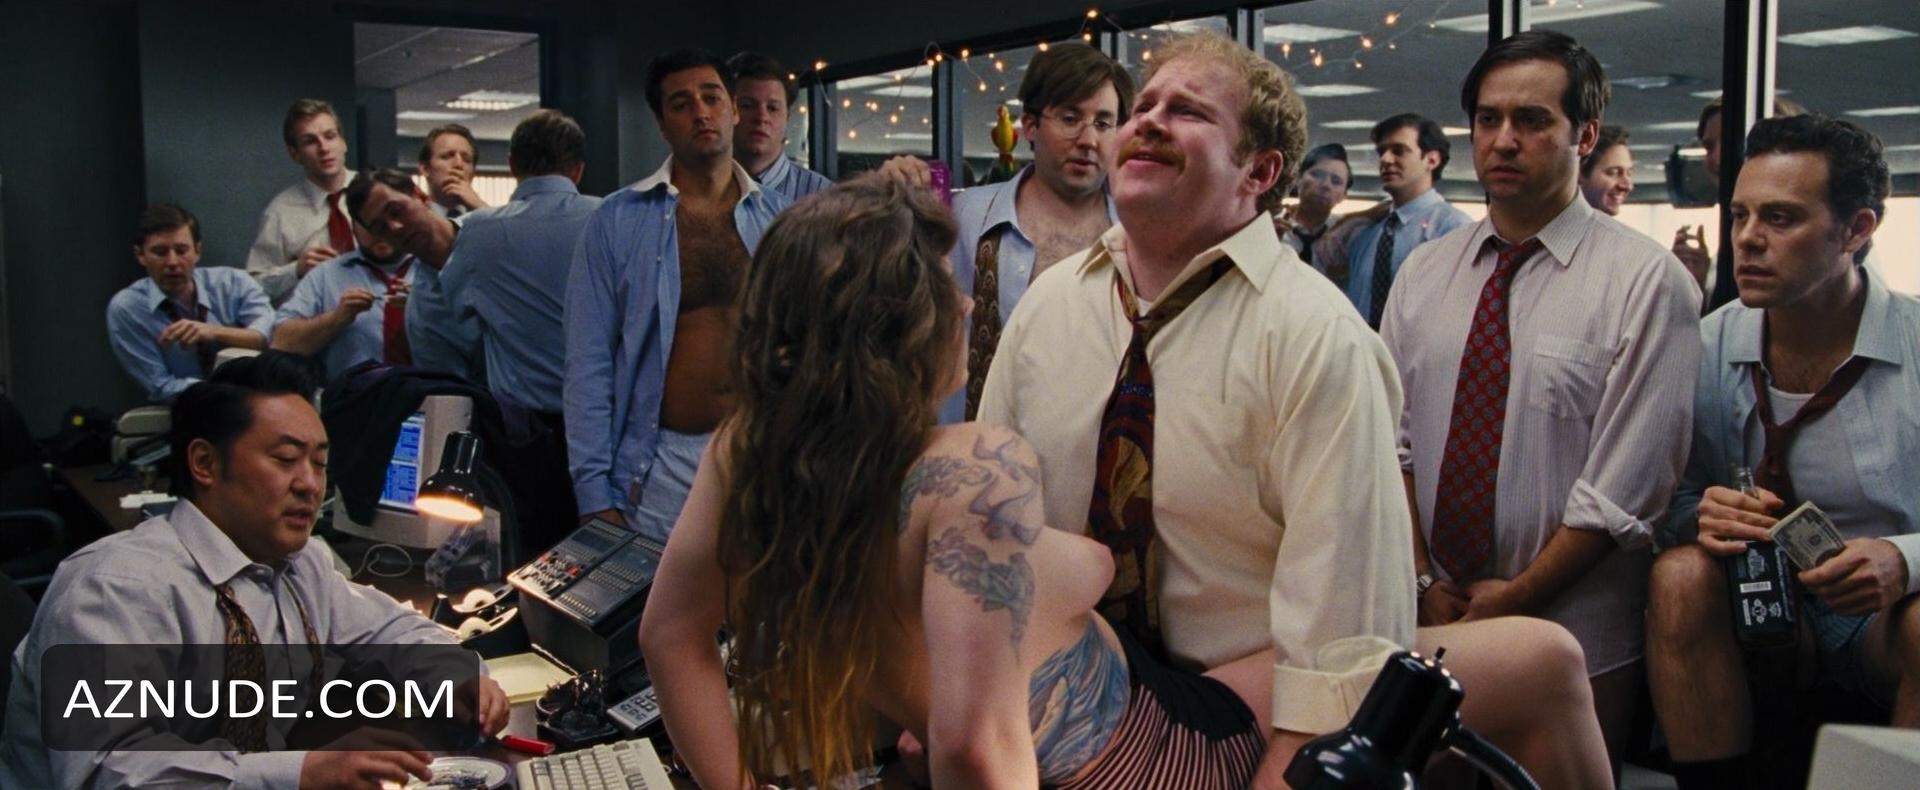 the wolf of wall street nude girls